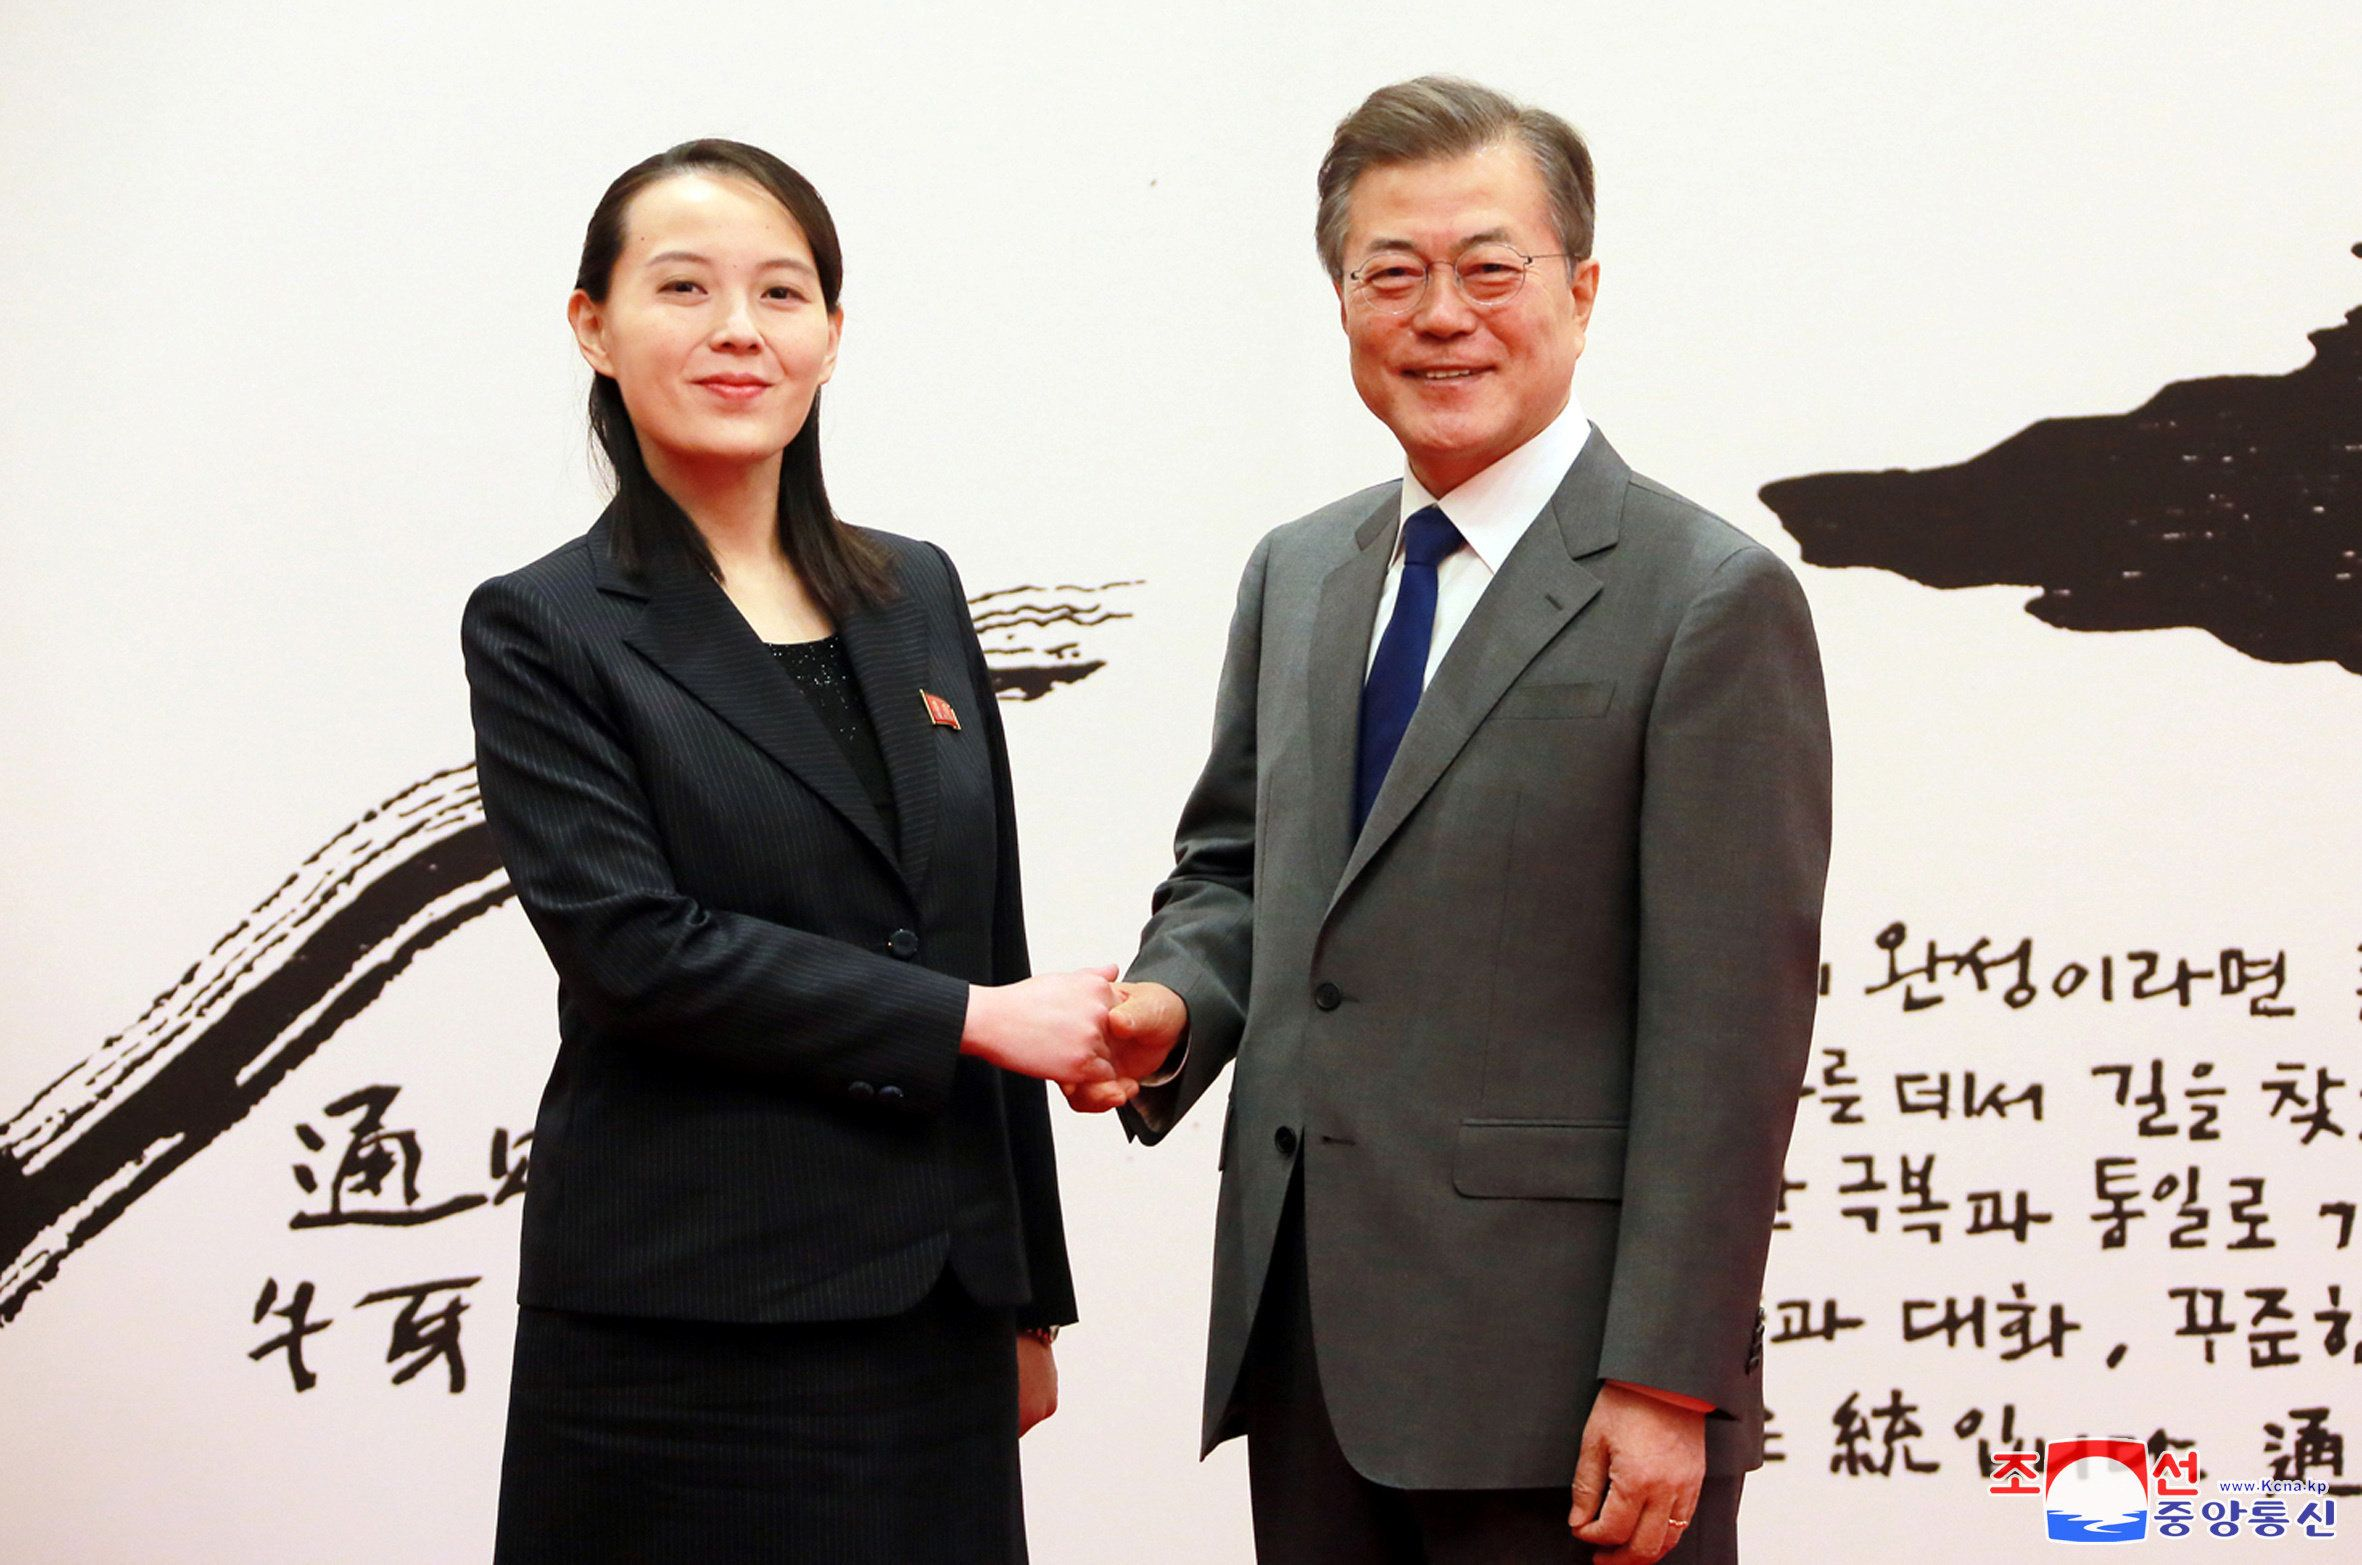 South Korean President Moon Jae-in shakes hands with Kim Yo Jong, the sister of North Korea's leader Kim Jong Un, in Seoul, South Korea in this undated photo released by North Korea's Korean Central News Agency (KCNA) February 10, 2018. KCNA/via REUTERS ATTENTION EDITORS - THIS PICTURE WAS PROVIDED BY A THIRD PARTY. REUTERS IS UNABLE TO INDEPENDENTLY VERIFY THE AUTHENTICITY, CONTENT, LOCATION OR DATE OF THIS IMAGE. NO THIRD PARTY SALES. NOT FOR USE BY REUTERS THIRD PARTY DISTRIBUTORS. SOUTH KOREA OUT.